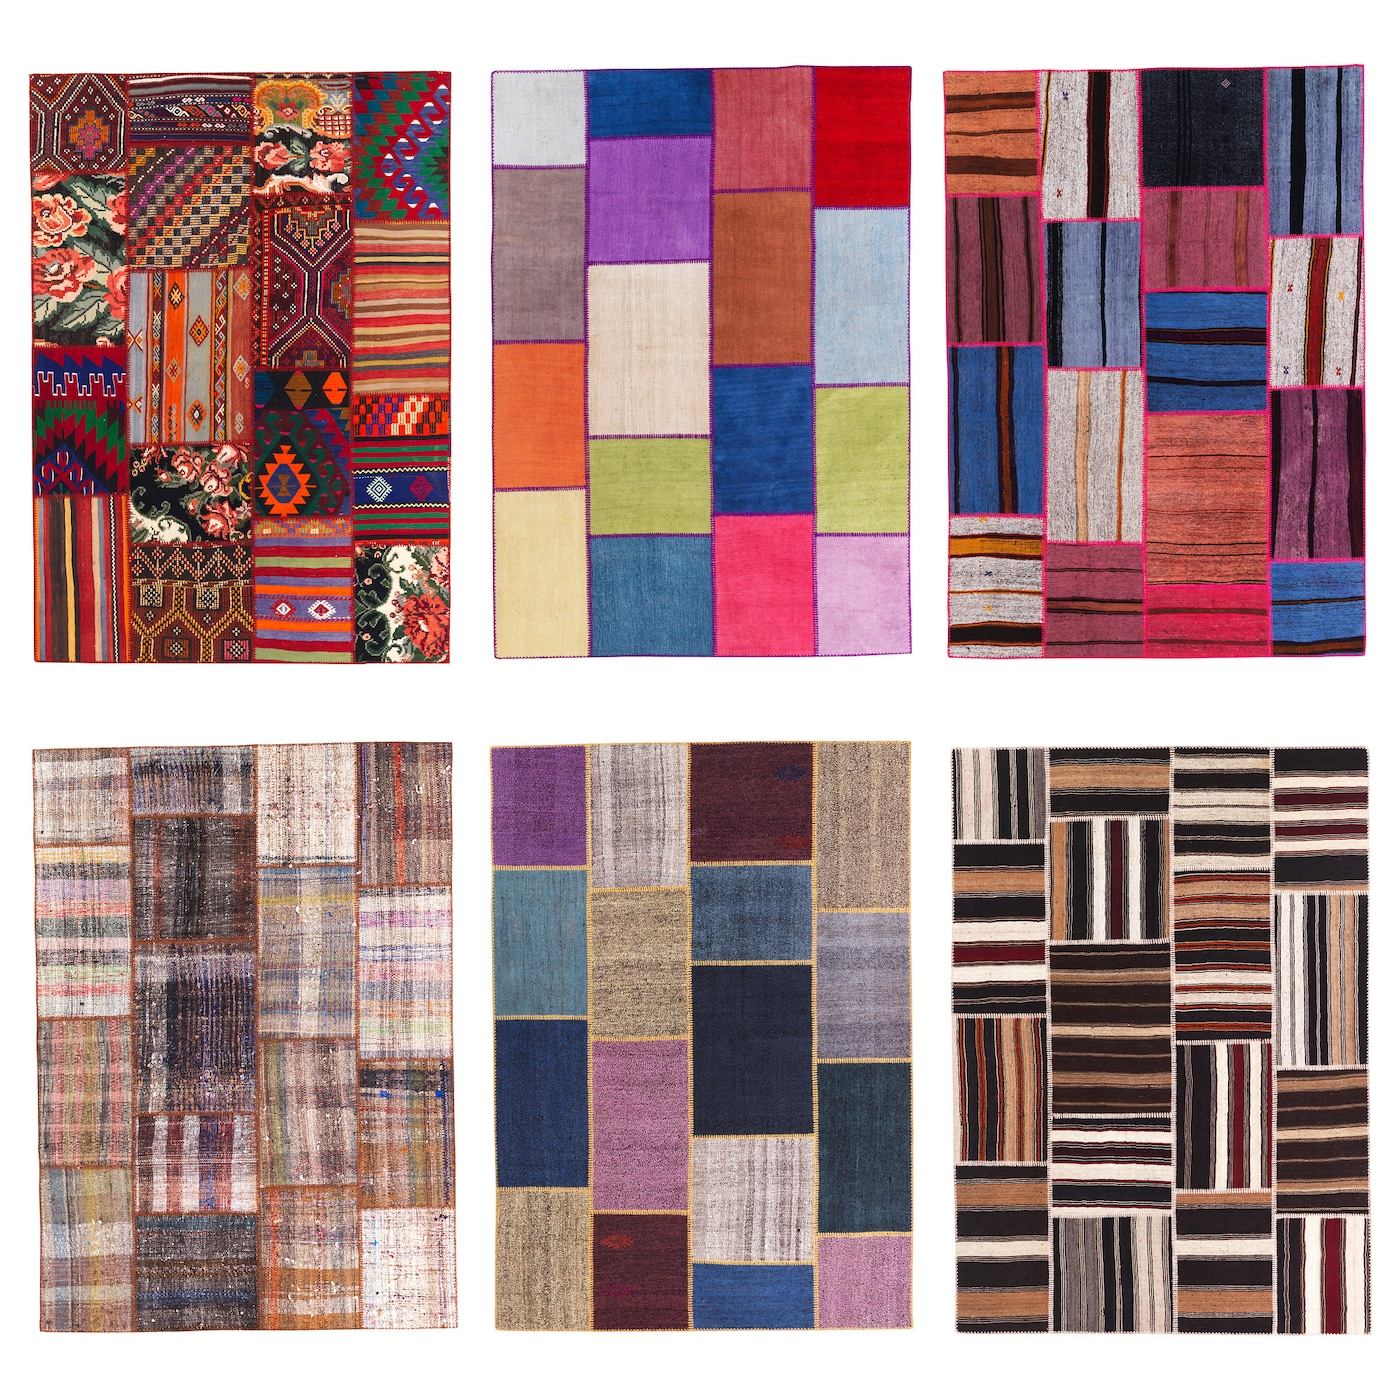 kelim teppich ikea kelim teppich ikea silkeborg rug flatwoven kilim 170x240 kelim teppich ikea. Black Bedroom Furniture Sets. Home Design Ideas